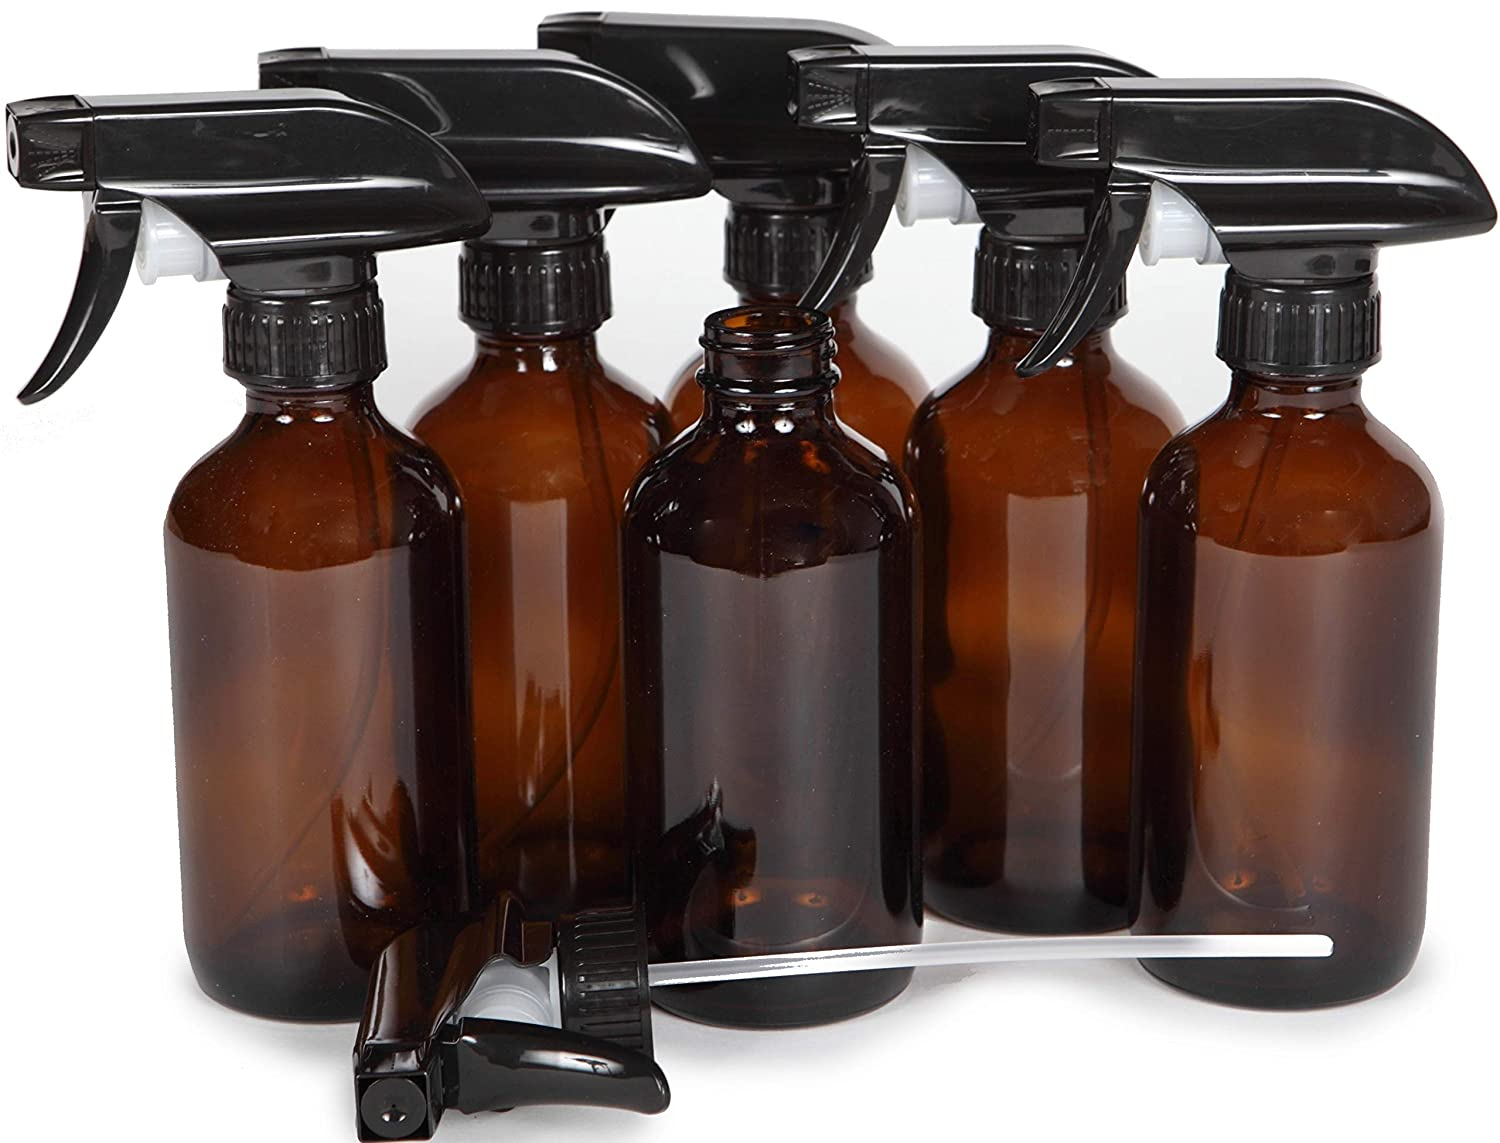 Vivaplex, 6, Large, 8 oz, Empty, Amber Glass Spray Bottles with Black Trigger Sprayers